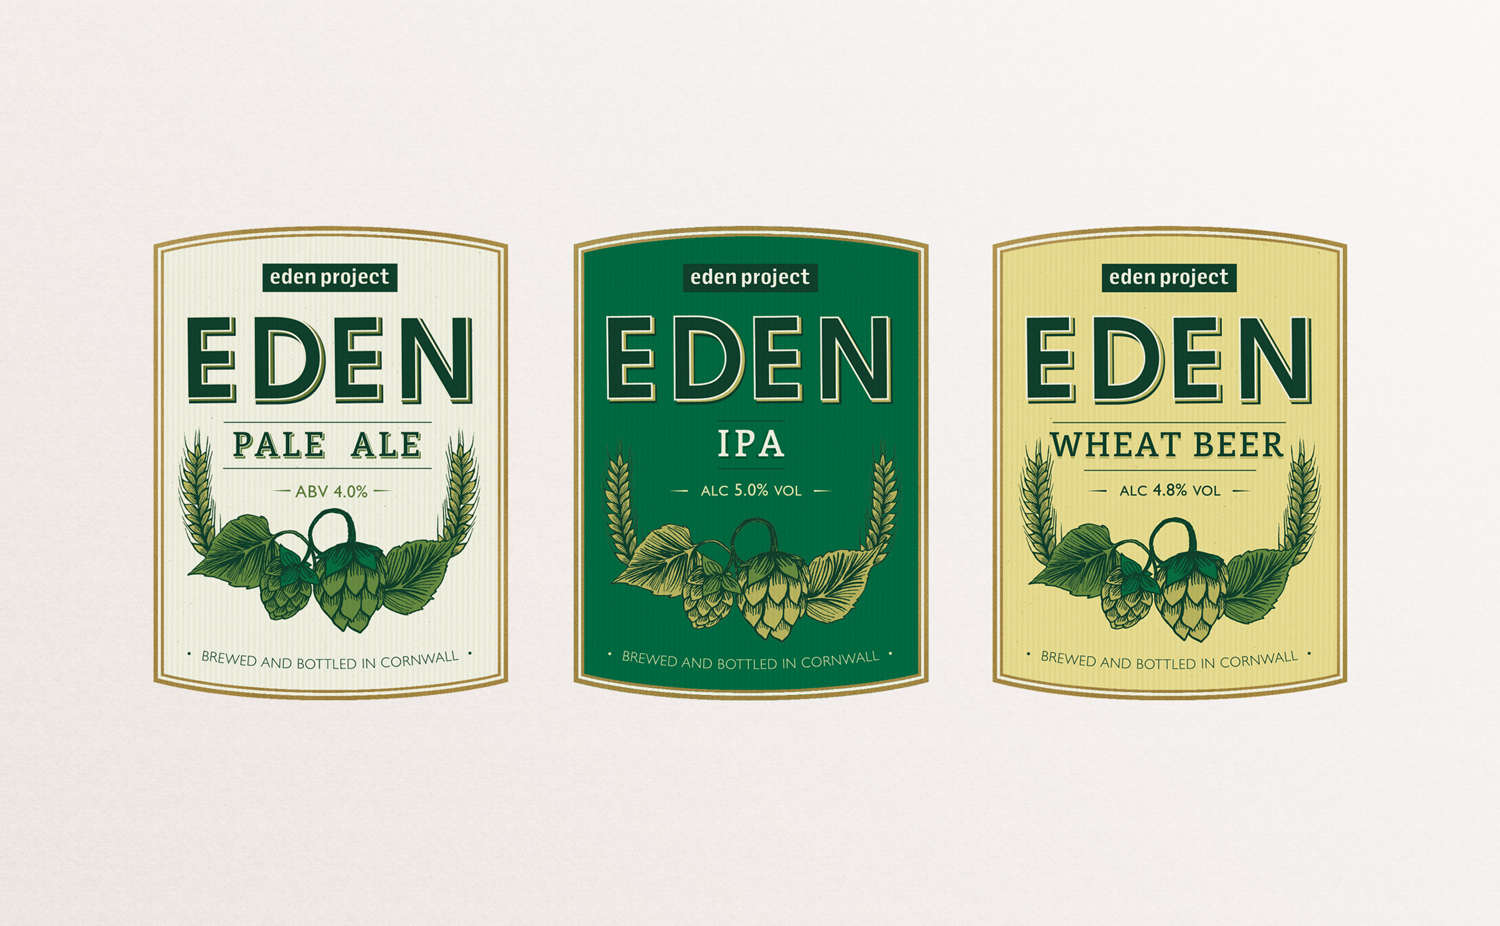 Eden pale ale, ipa, wheat beer label, beer label design